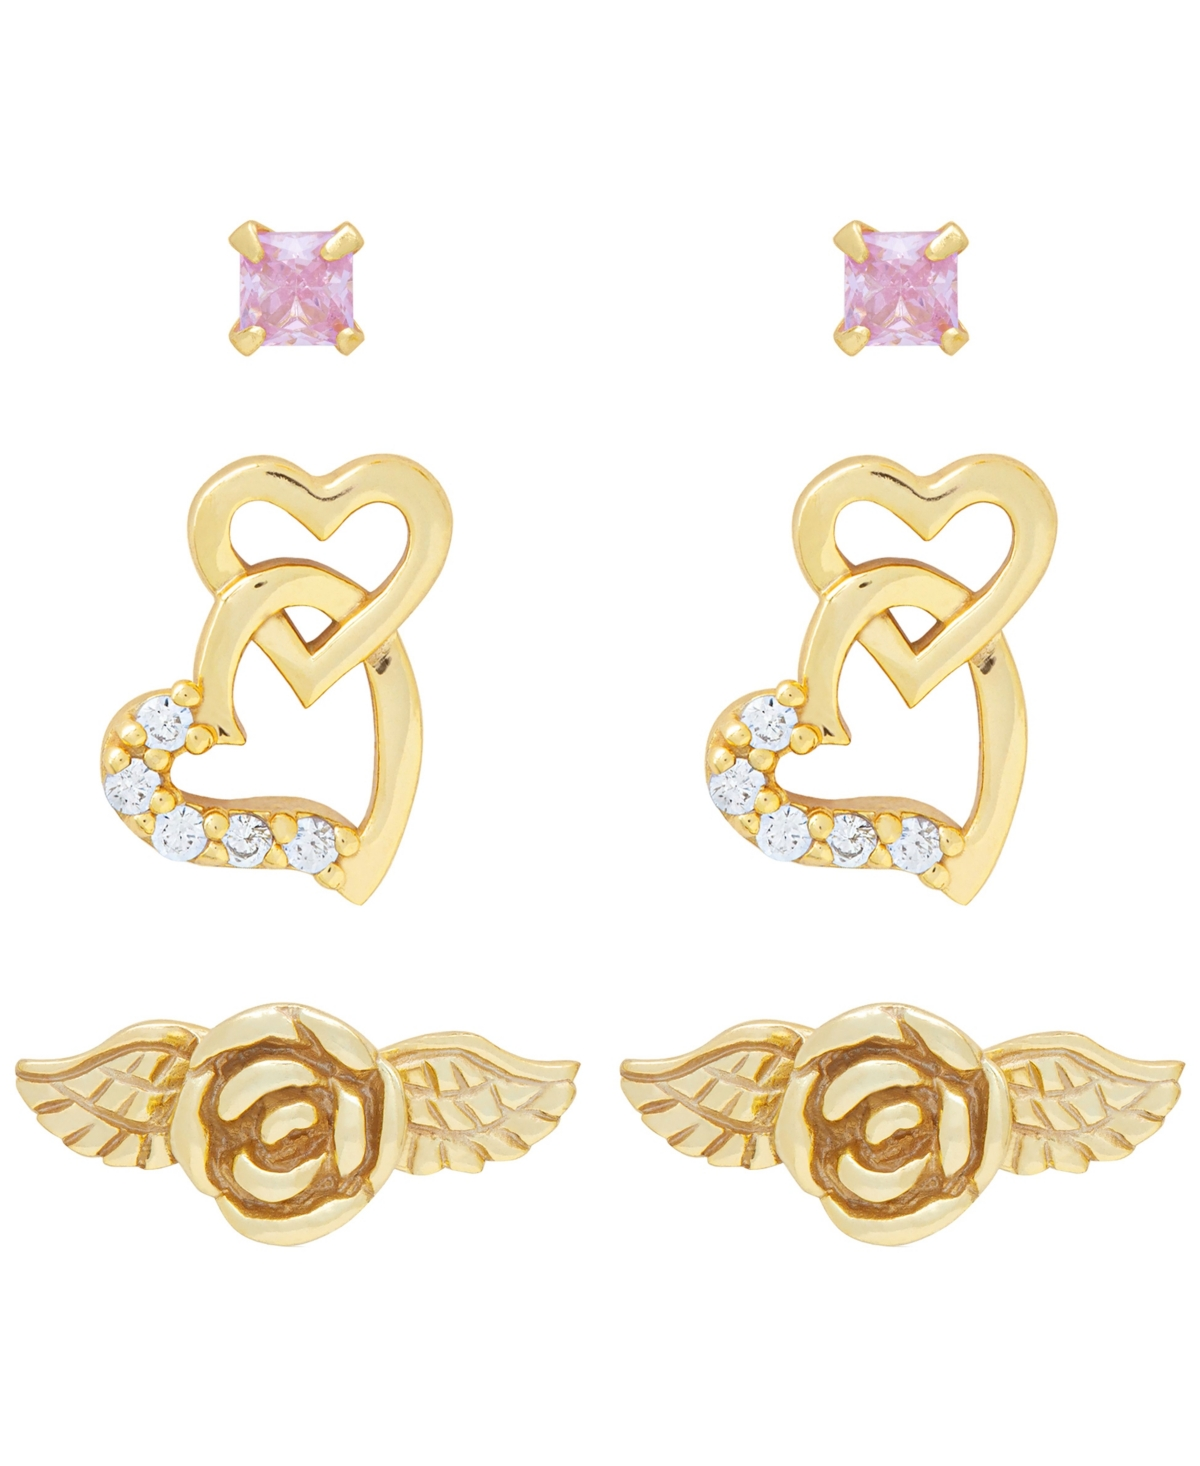 Link Up 3-Piece Set Flower, Pink Crystal and Hearts Stud Earrings in 18K Gold Over Sterling Silver